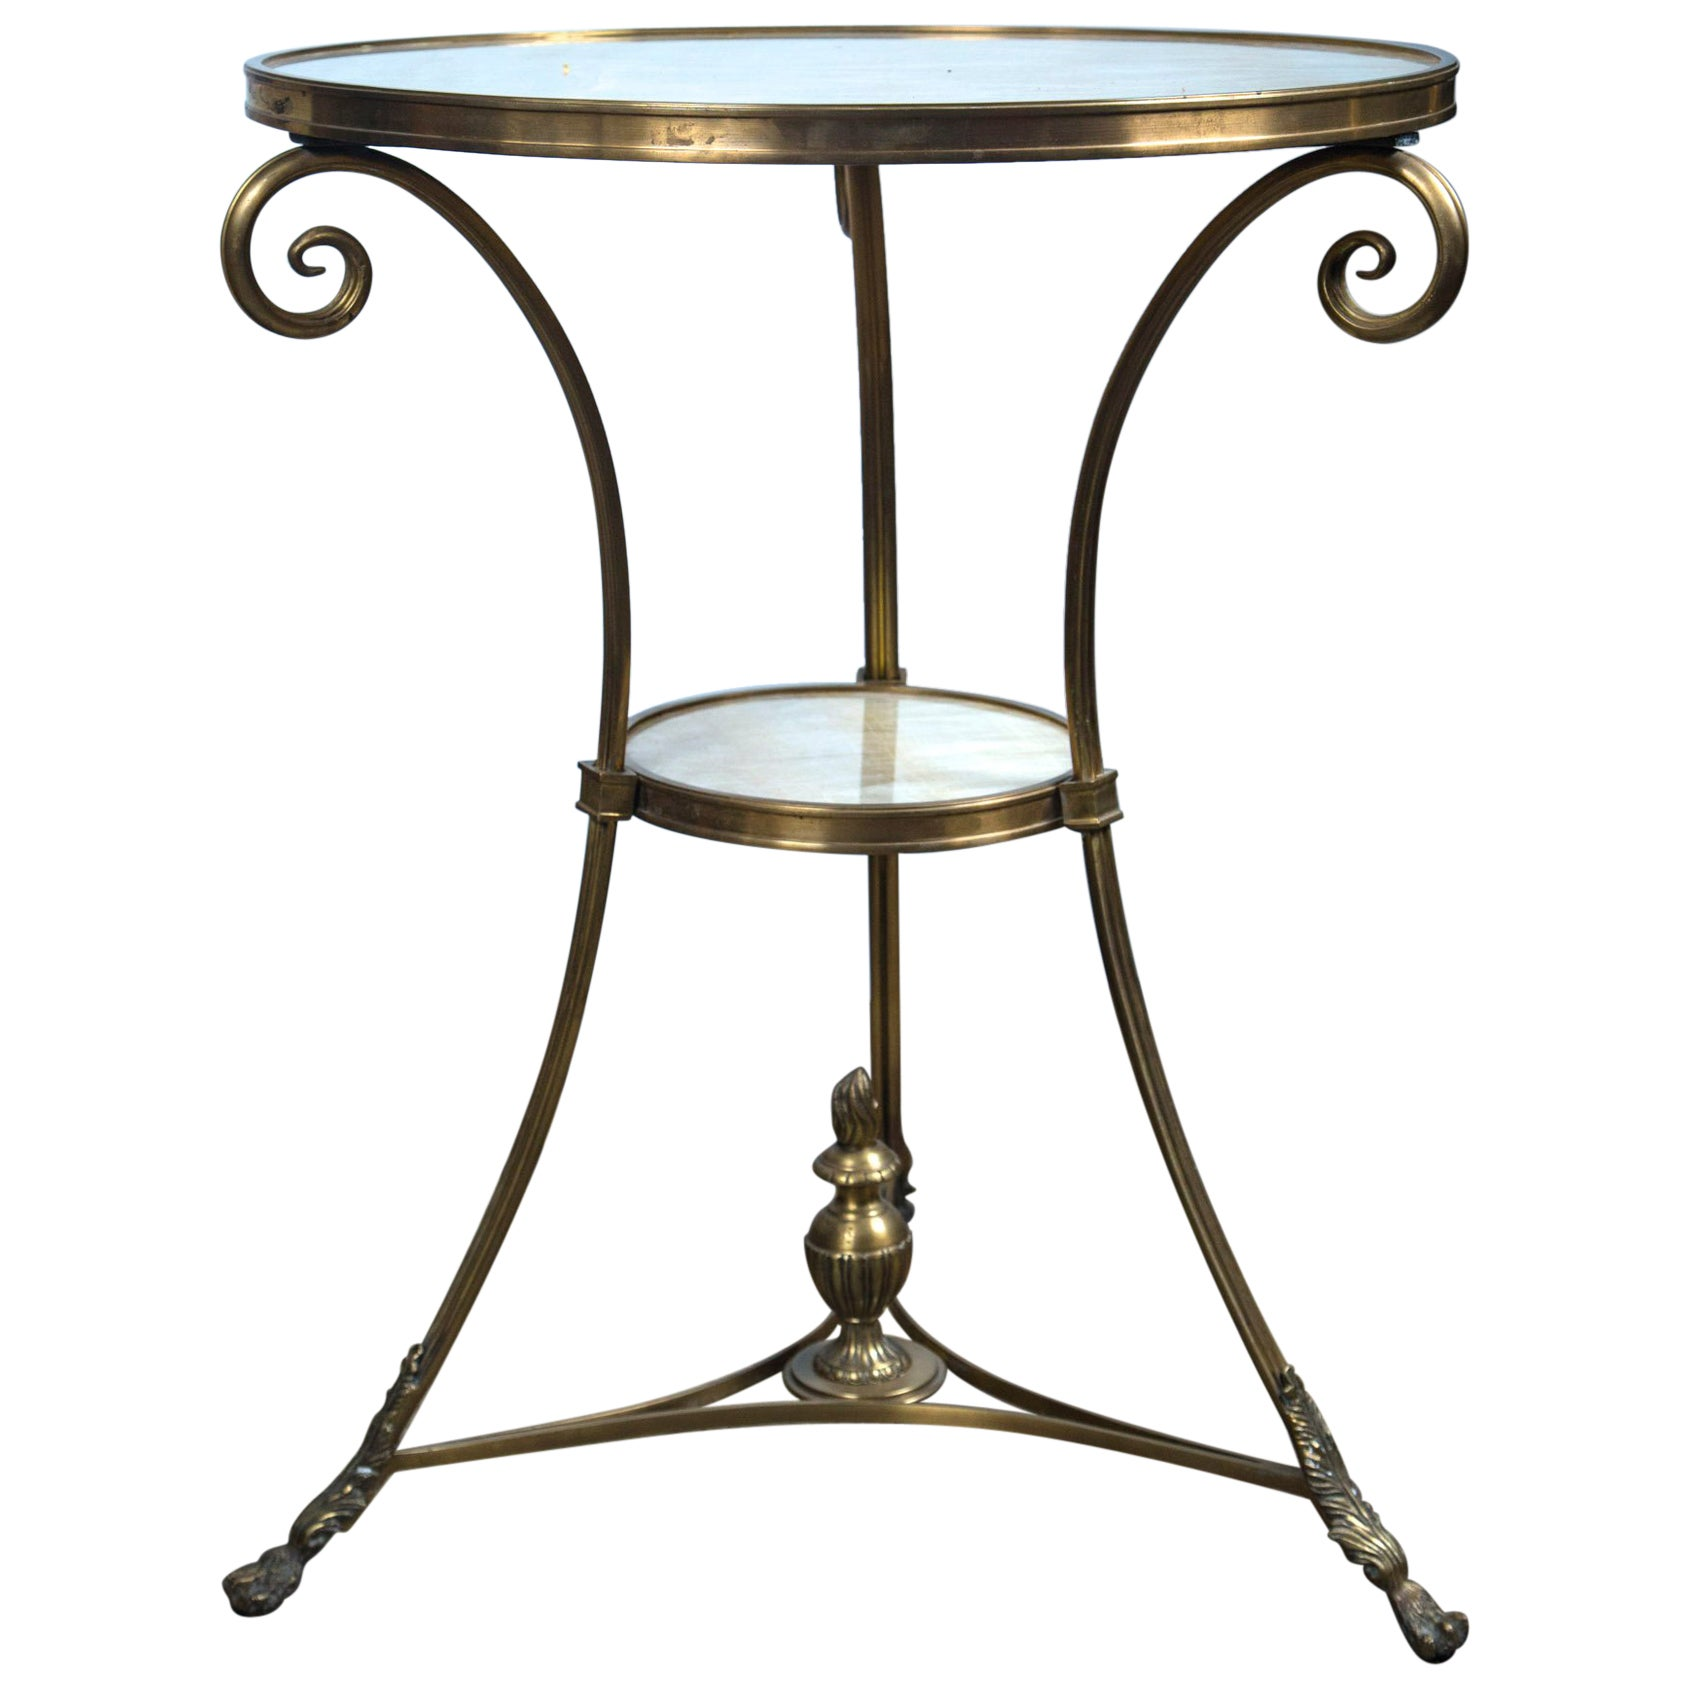 Pair of Brass and Onyx 2-Tier Gueridon Tables